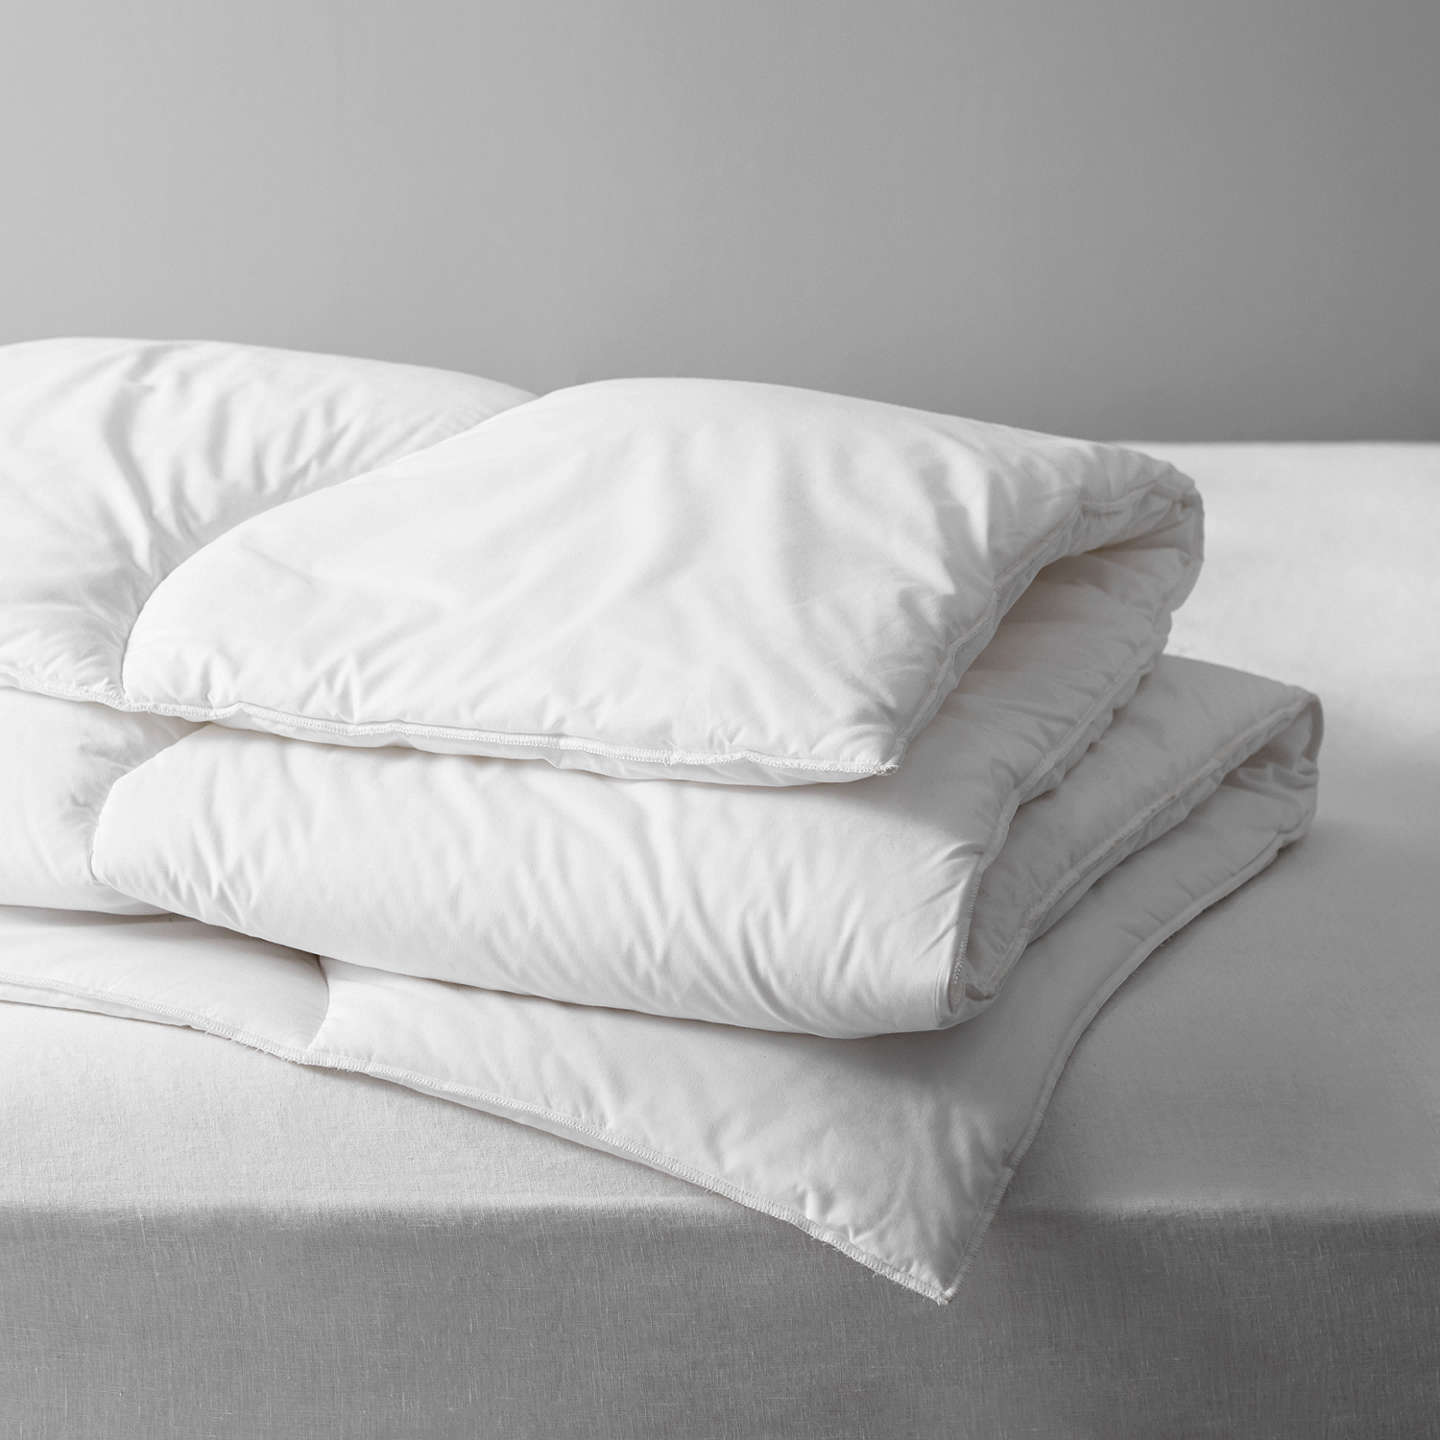 BuyJohn Lewis The Basics Microfibre Duvets, 10.5 Tog, Single Online at johnlewis.com